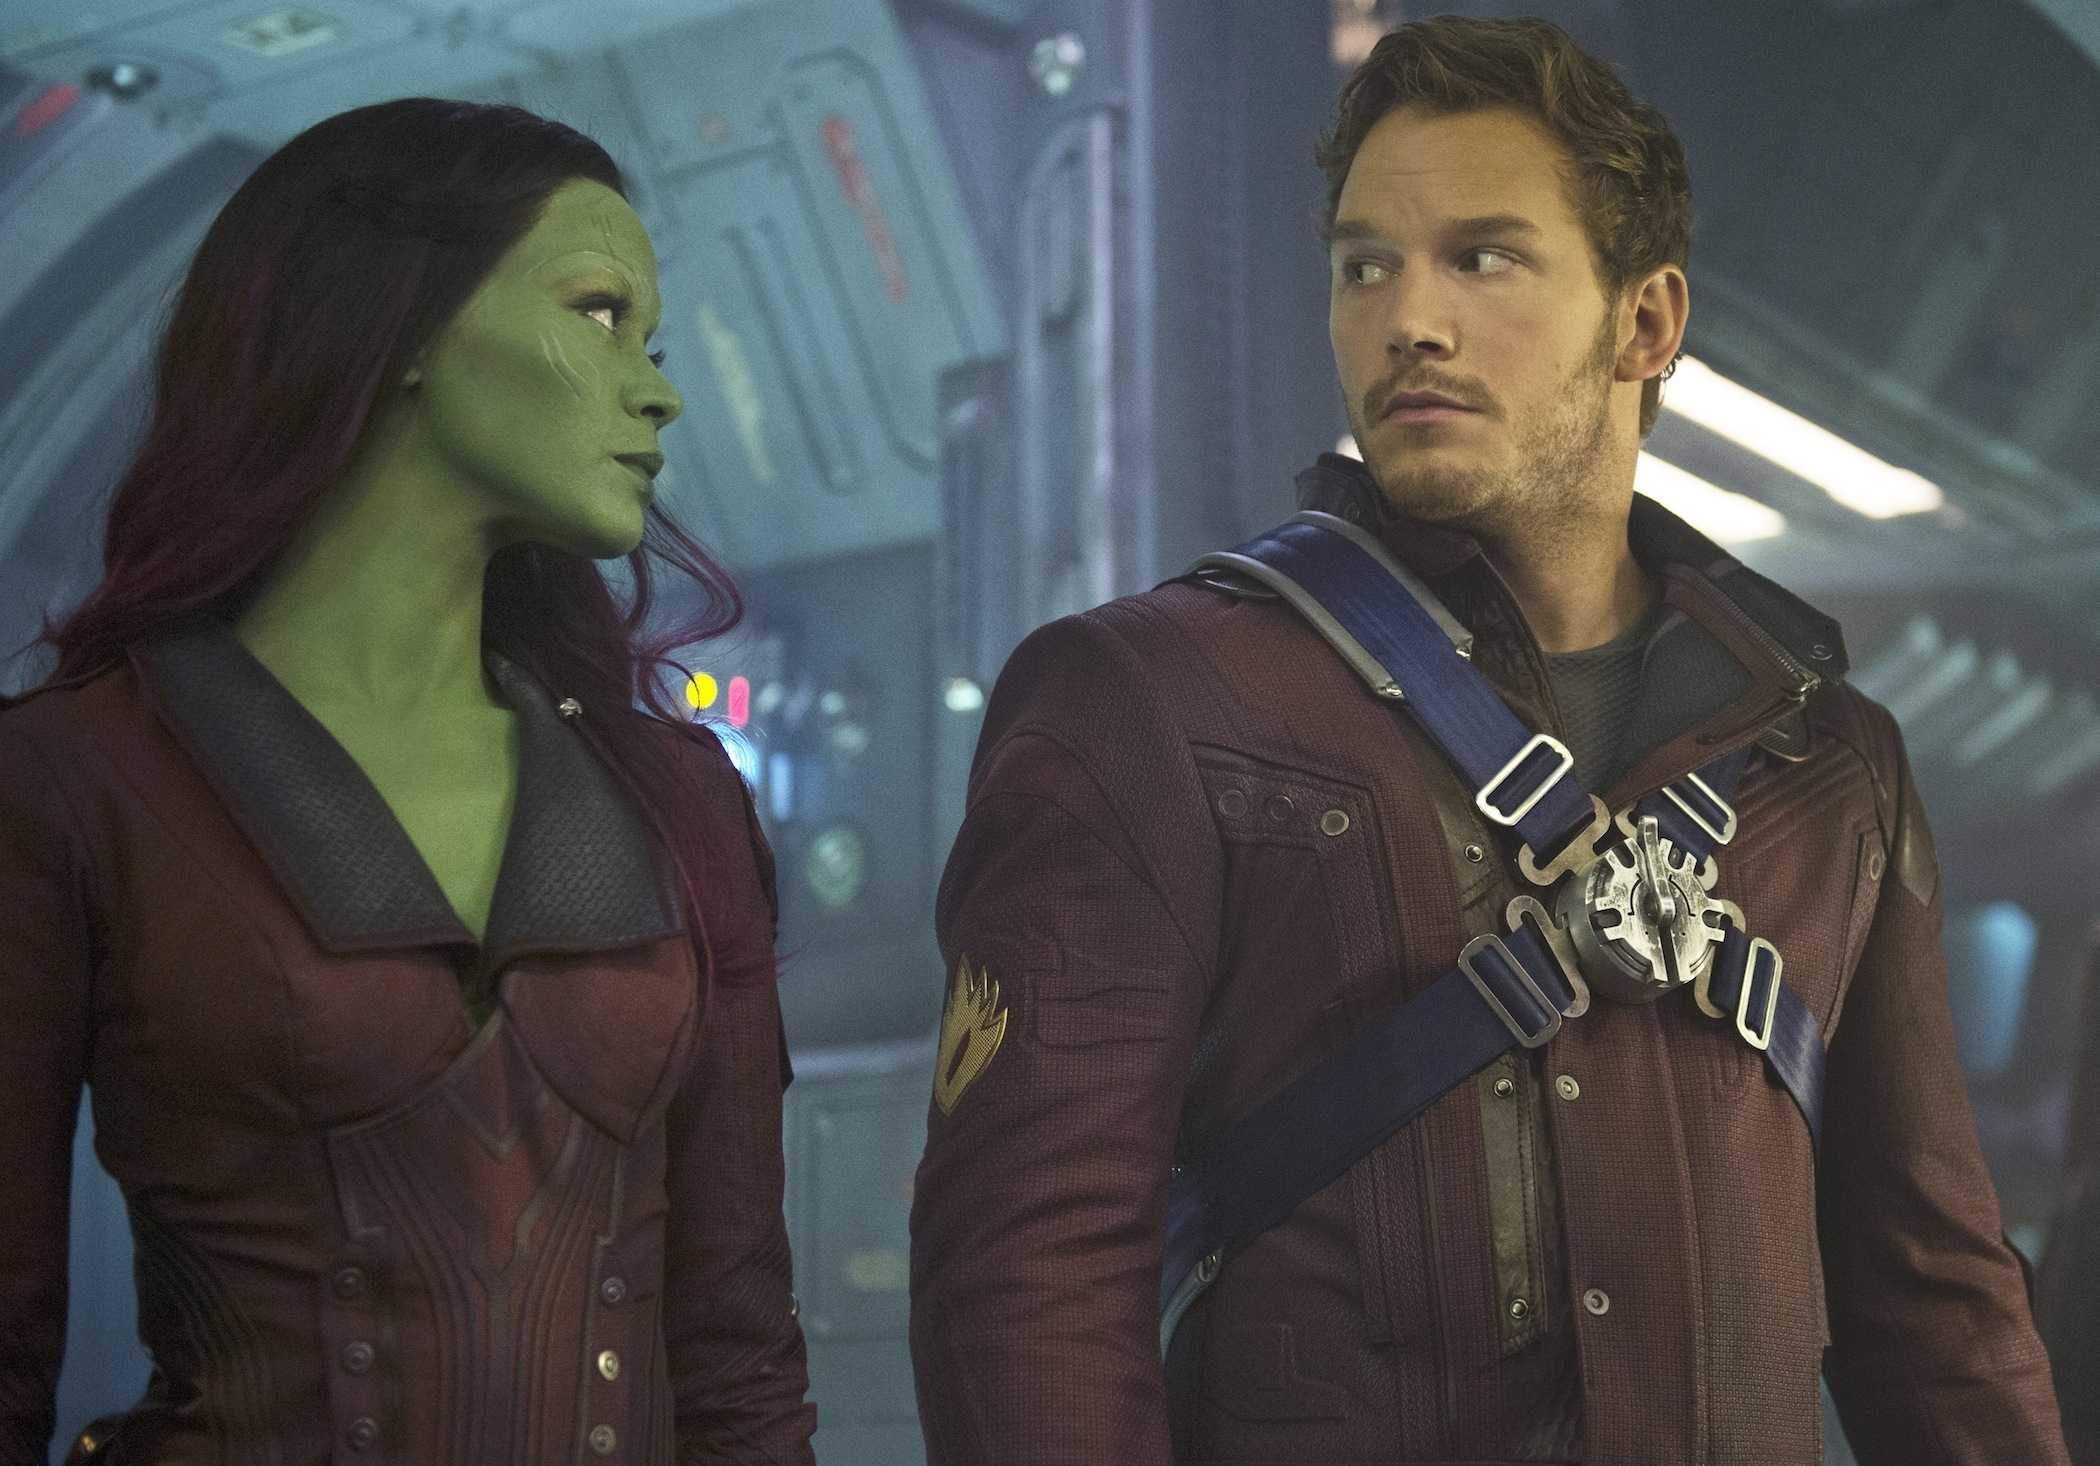 Zoe Saldana (Gamora) and Chris Pratt (Peter Quill) are two of the